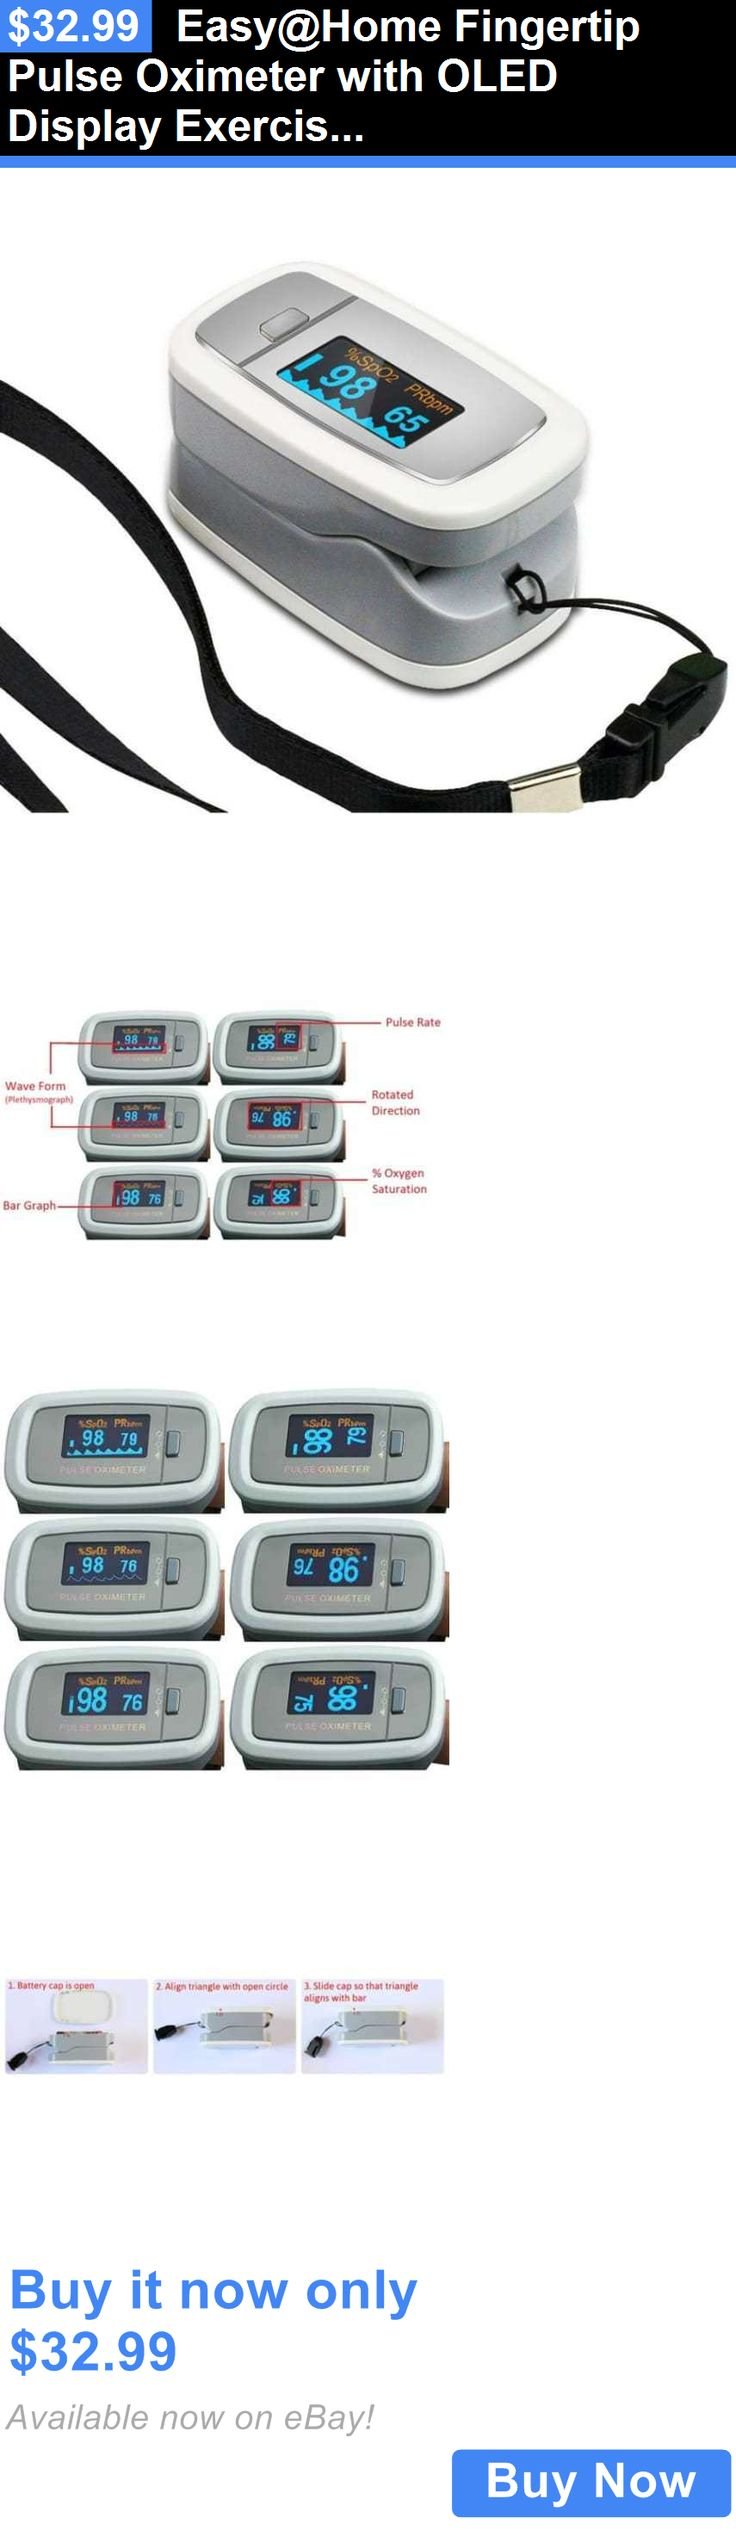 Oximeters: Easy@Home Fingertip Pulse Oximeter With Oled Display Exercise Fitness Monitor BUY IT NOW ONLY: $32.99